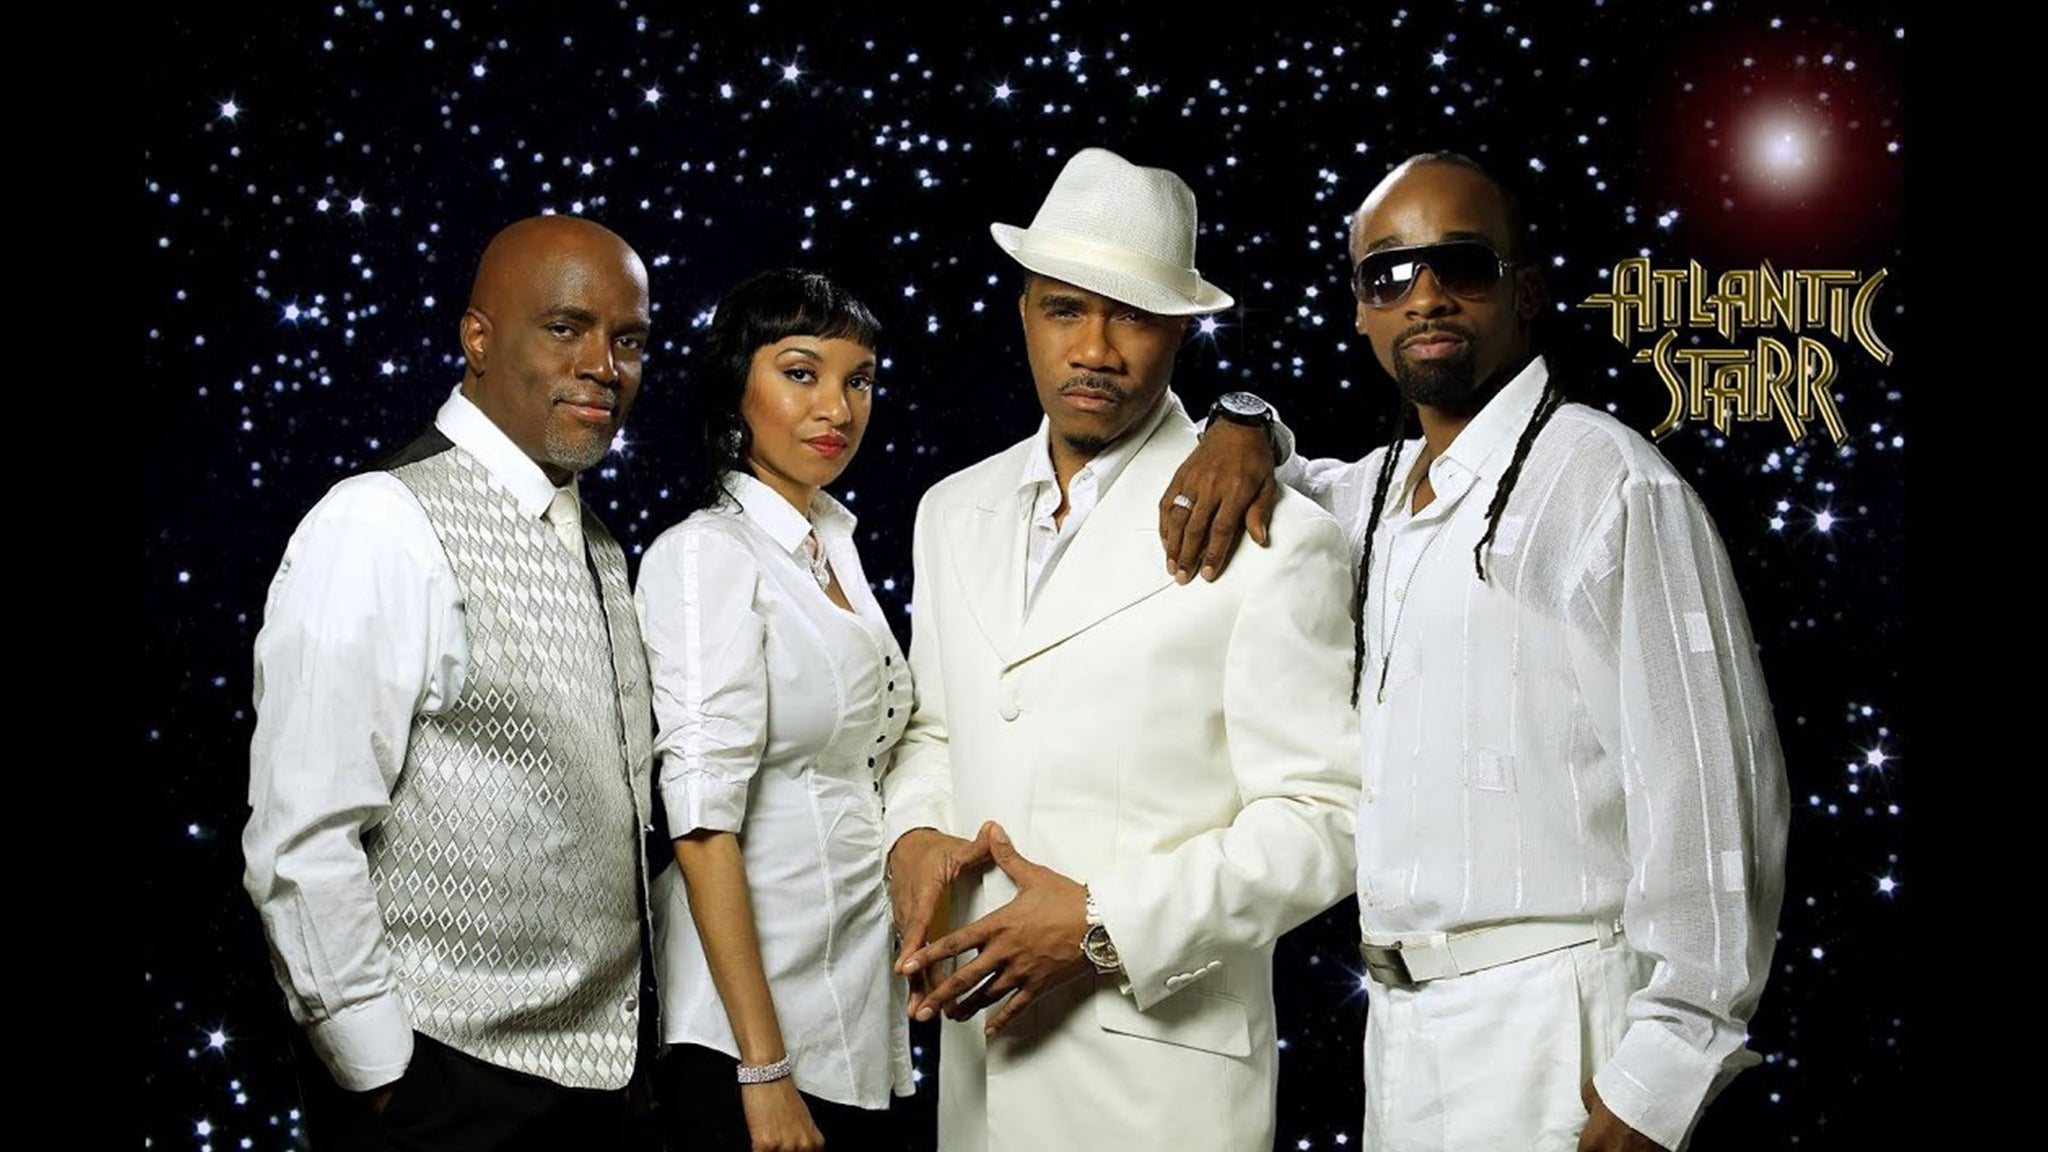 Atlantic Starr at Birchmere